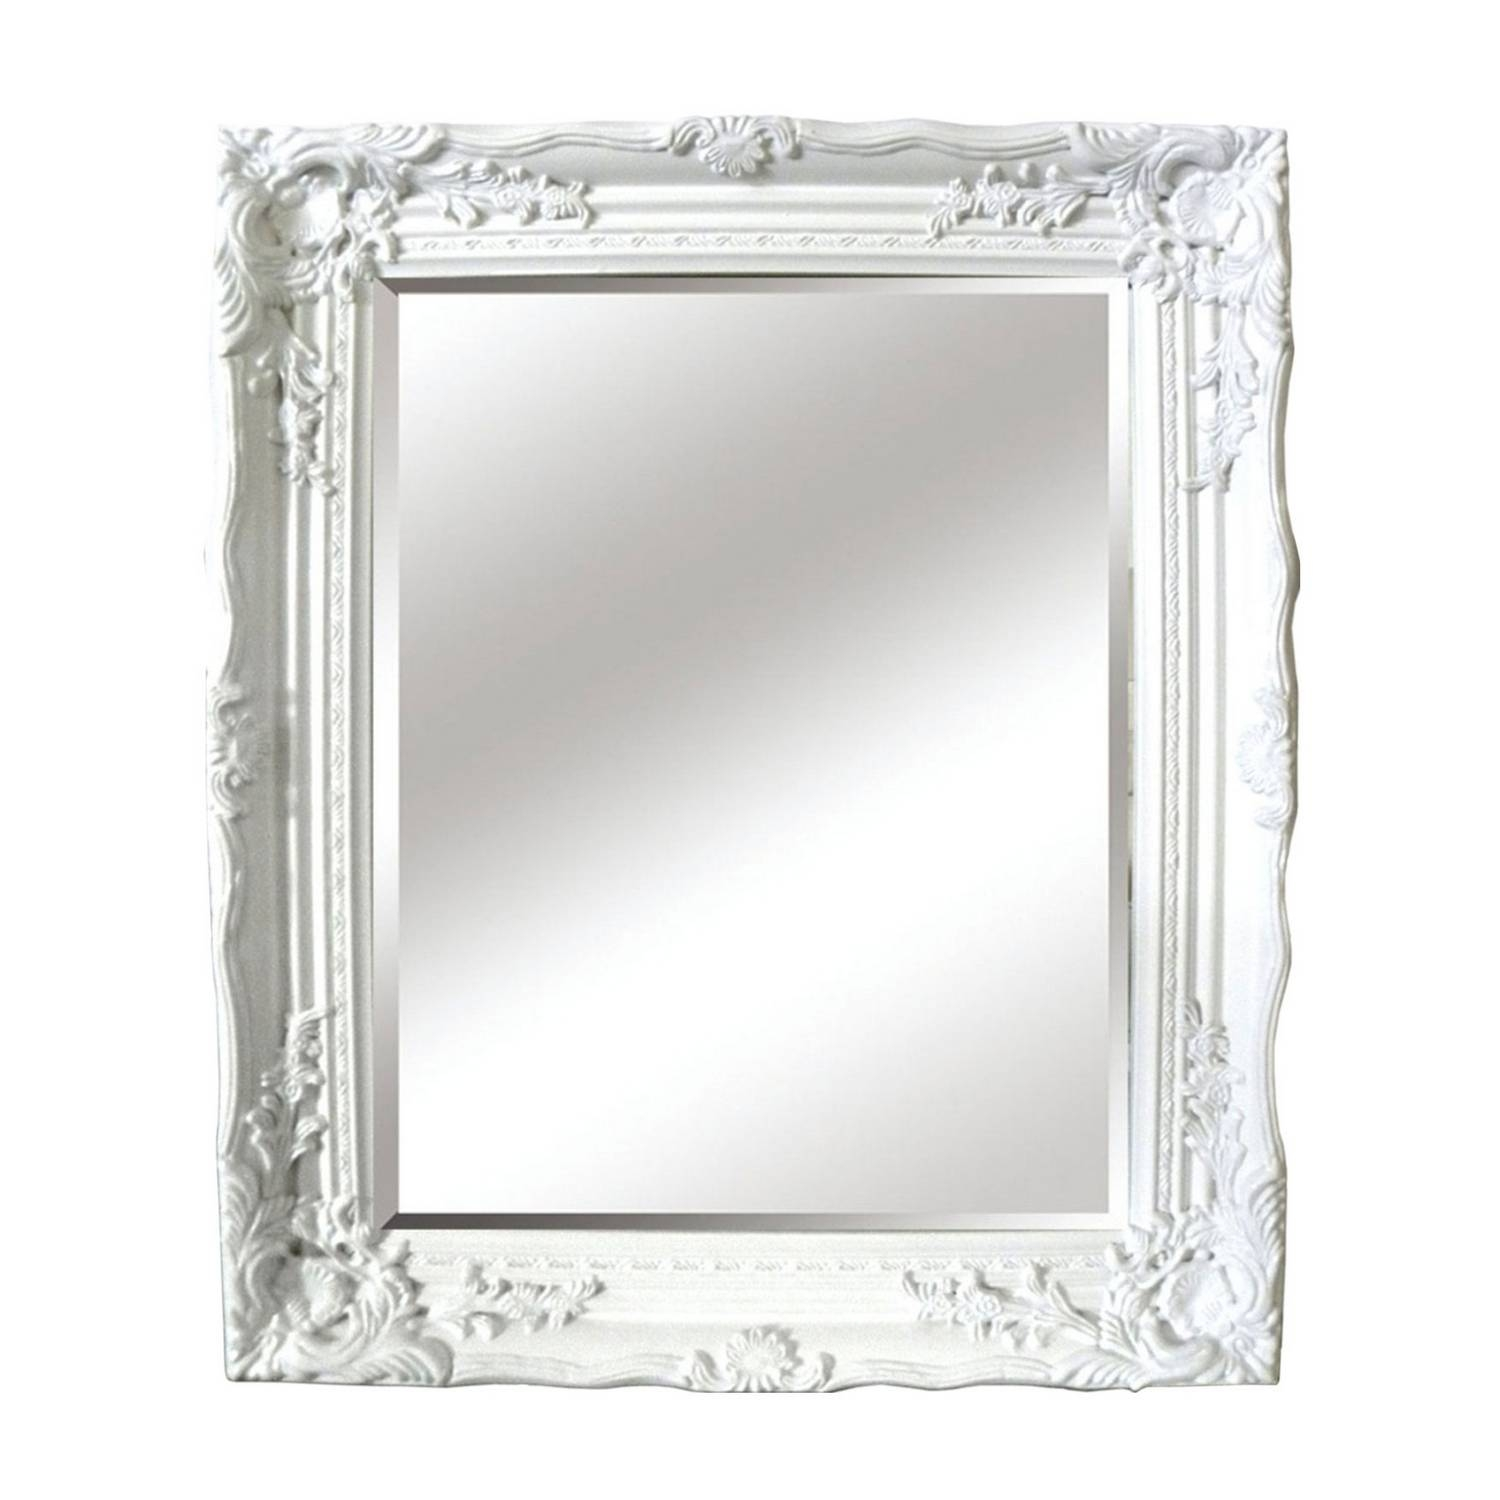 Buy Antique White Ornate Mirror Mirrors The Range Home For White Ornate Mirrors (Image 3 of 15)